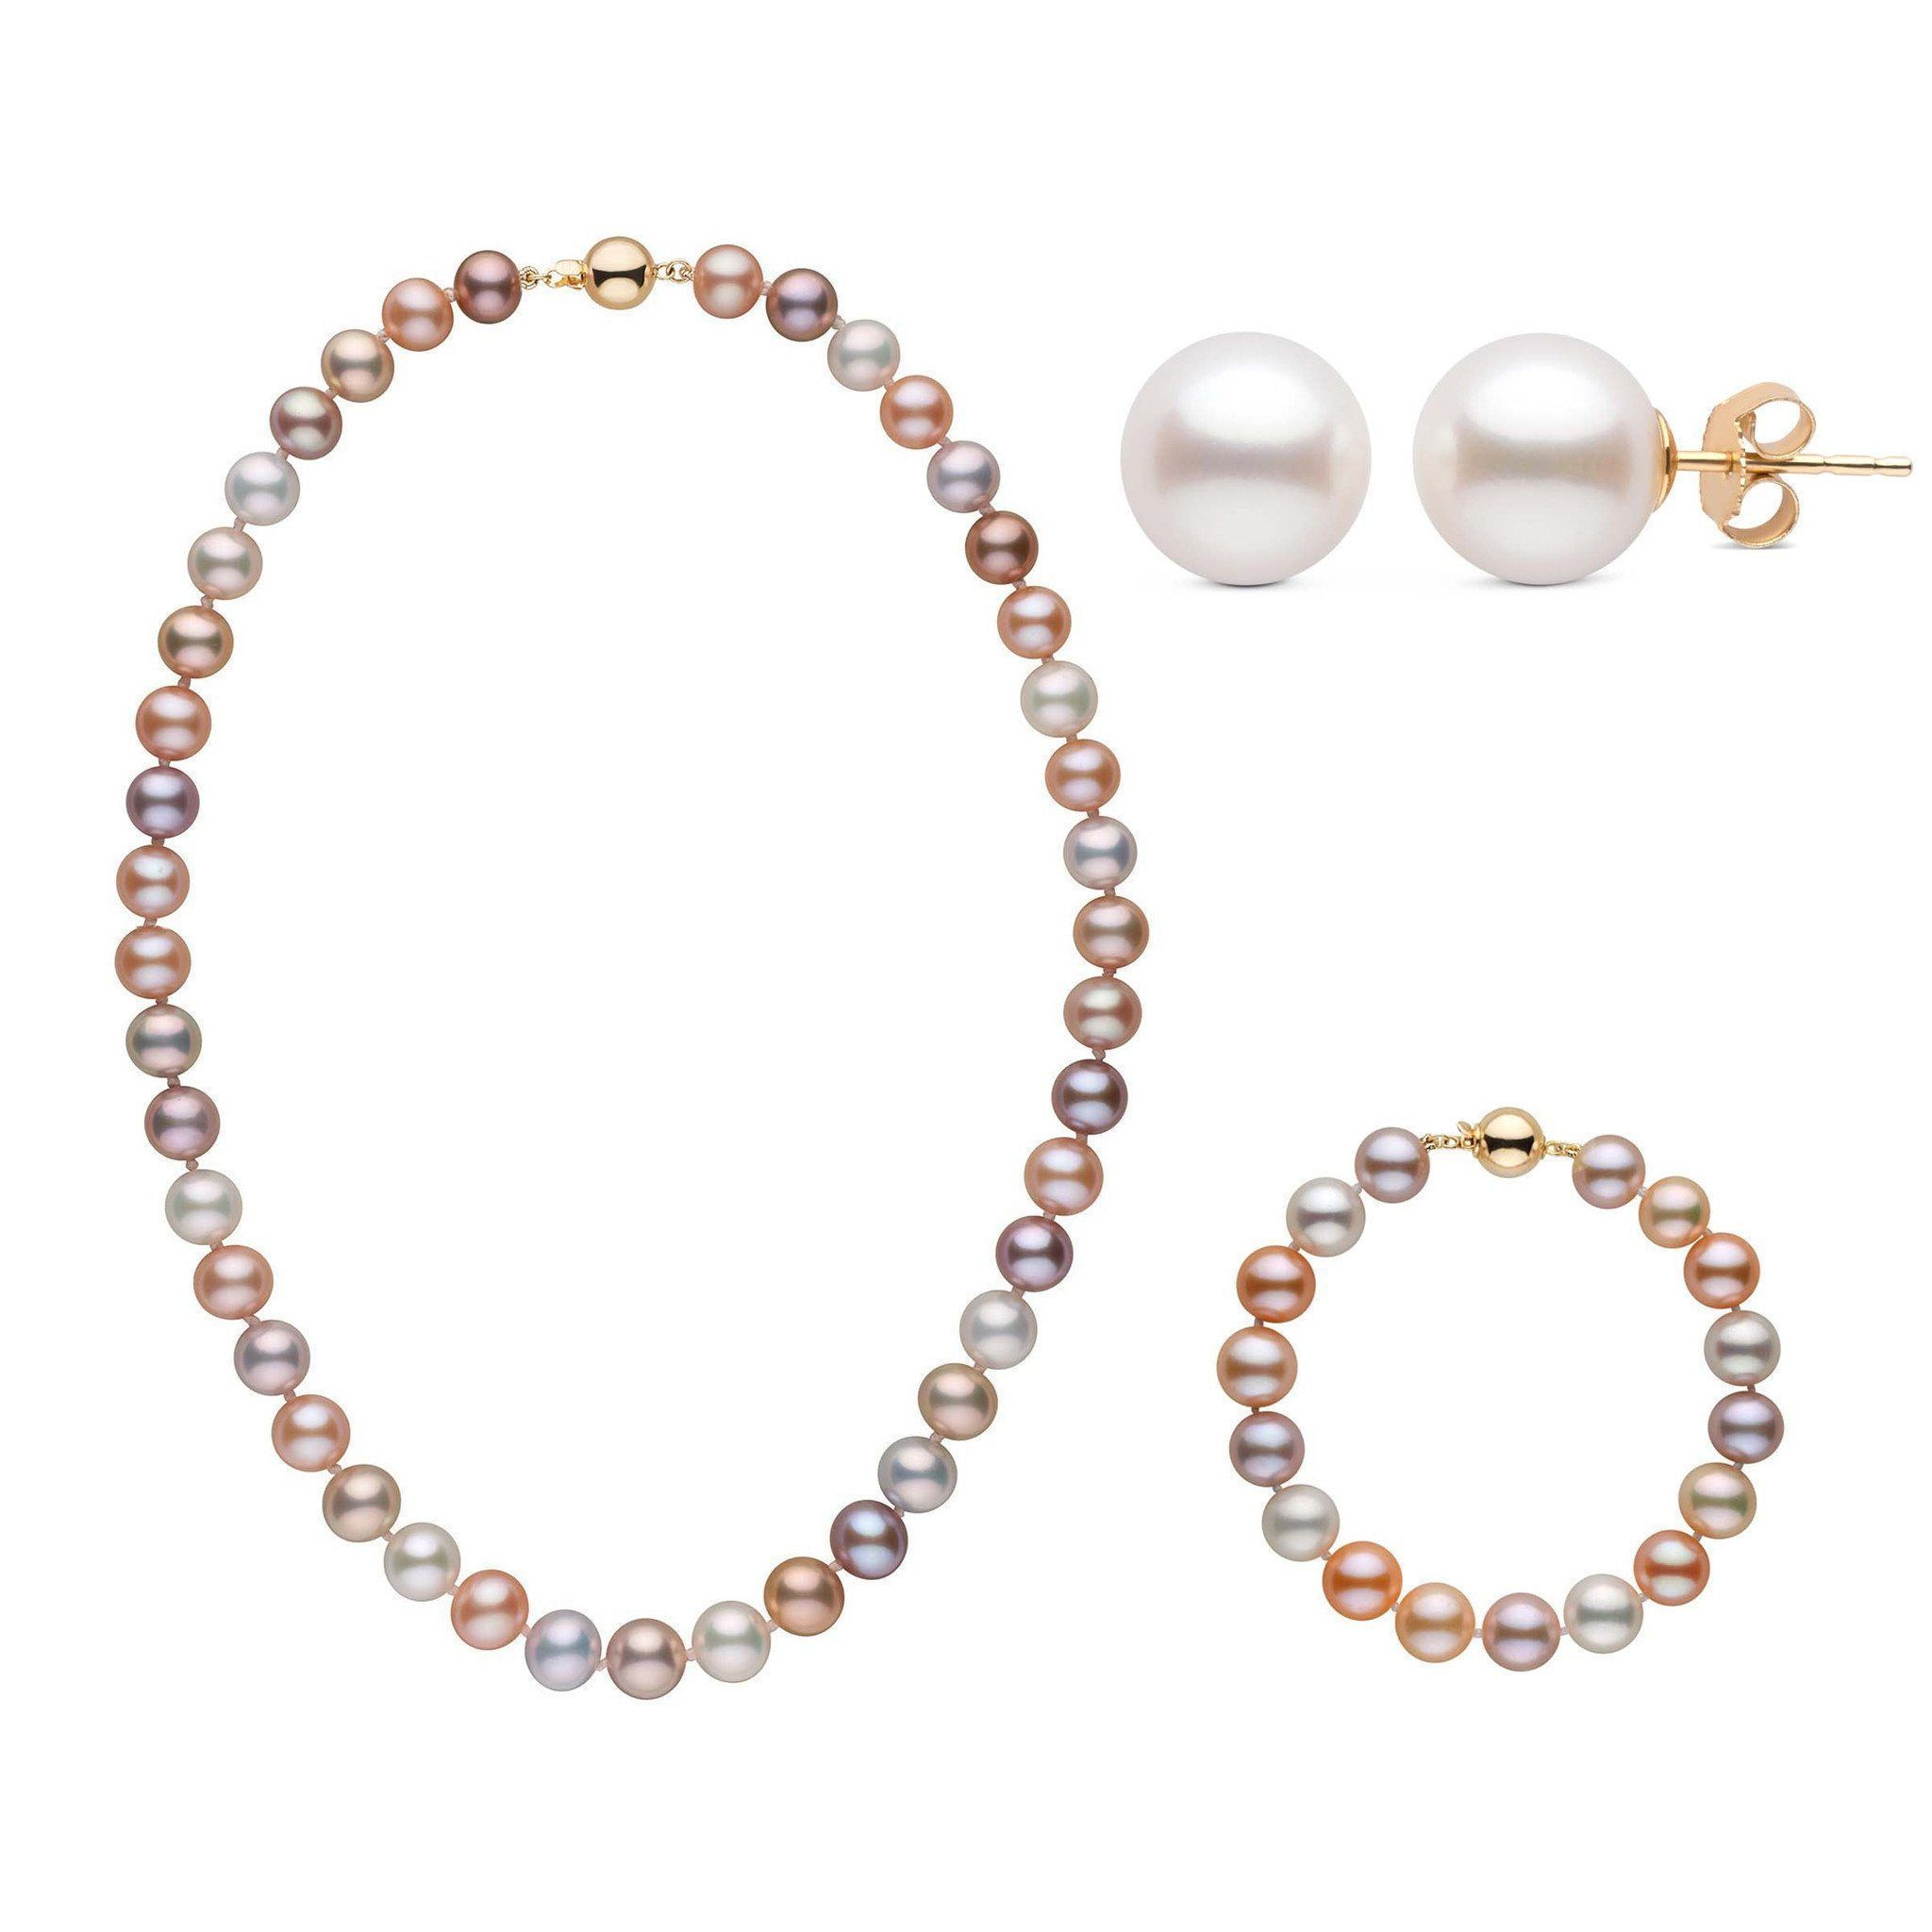 16 Inch 3 Piece Set of 8.5-9.0 mm AAA Multicolor Freshwater Pearls